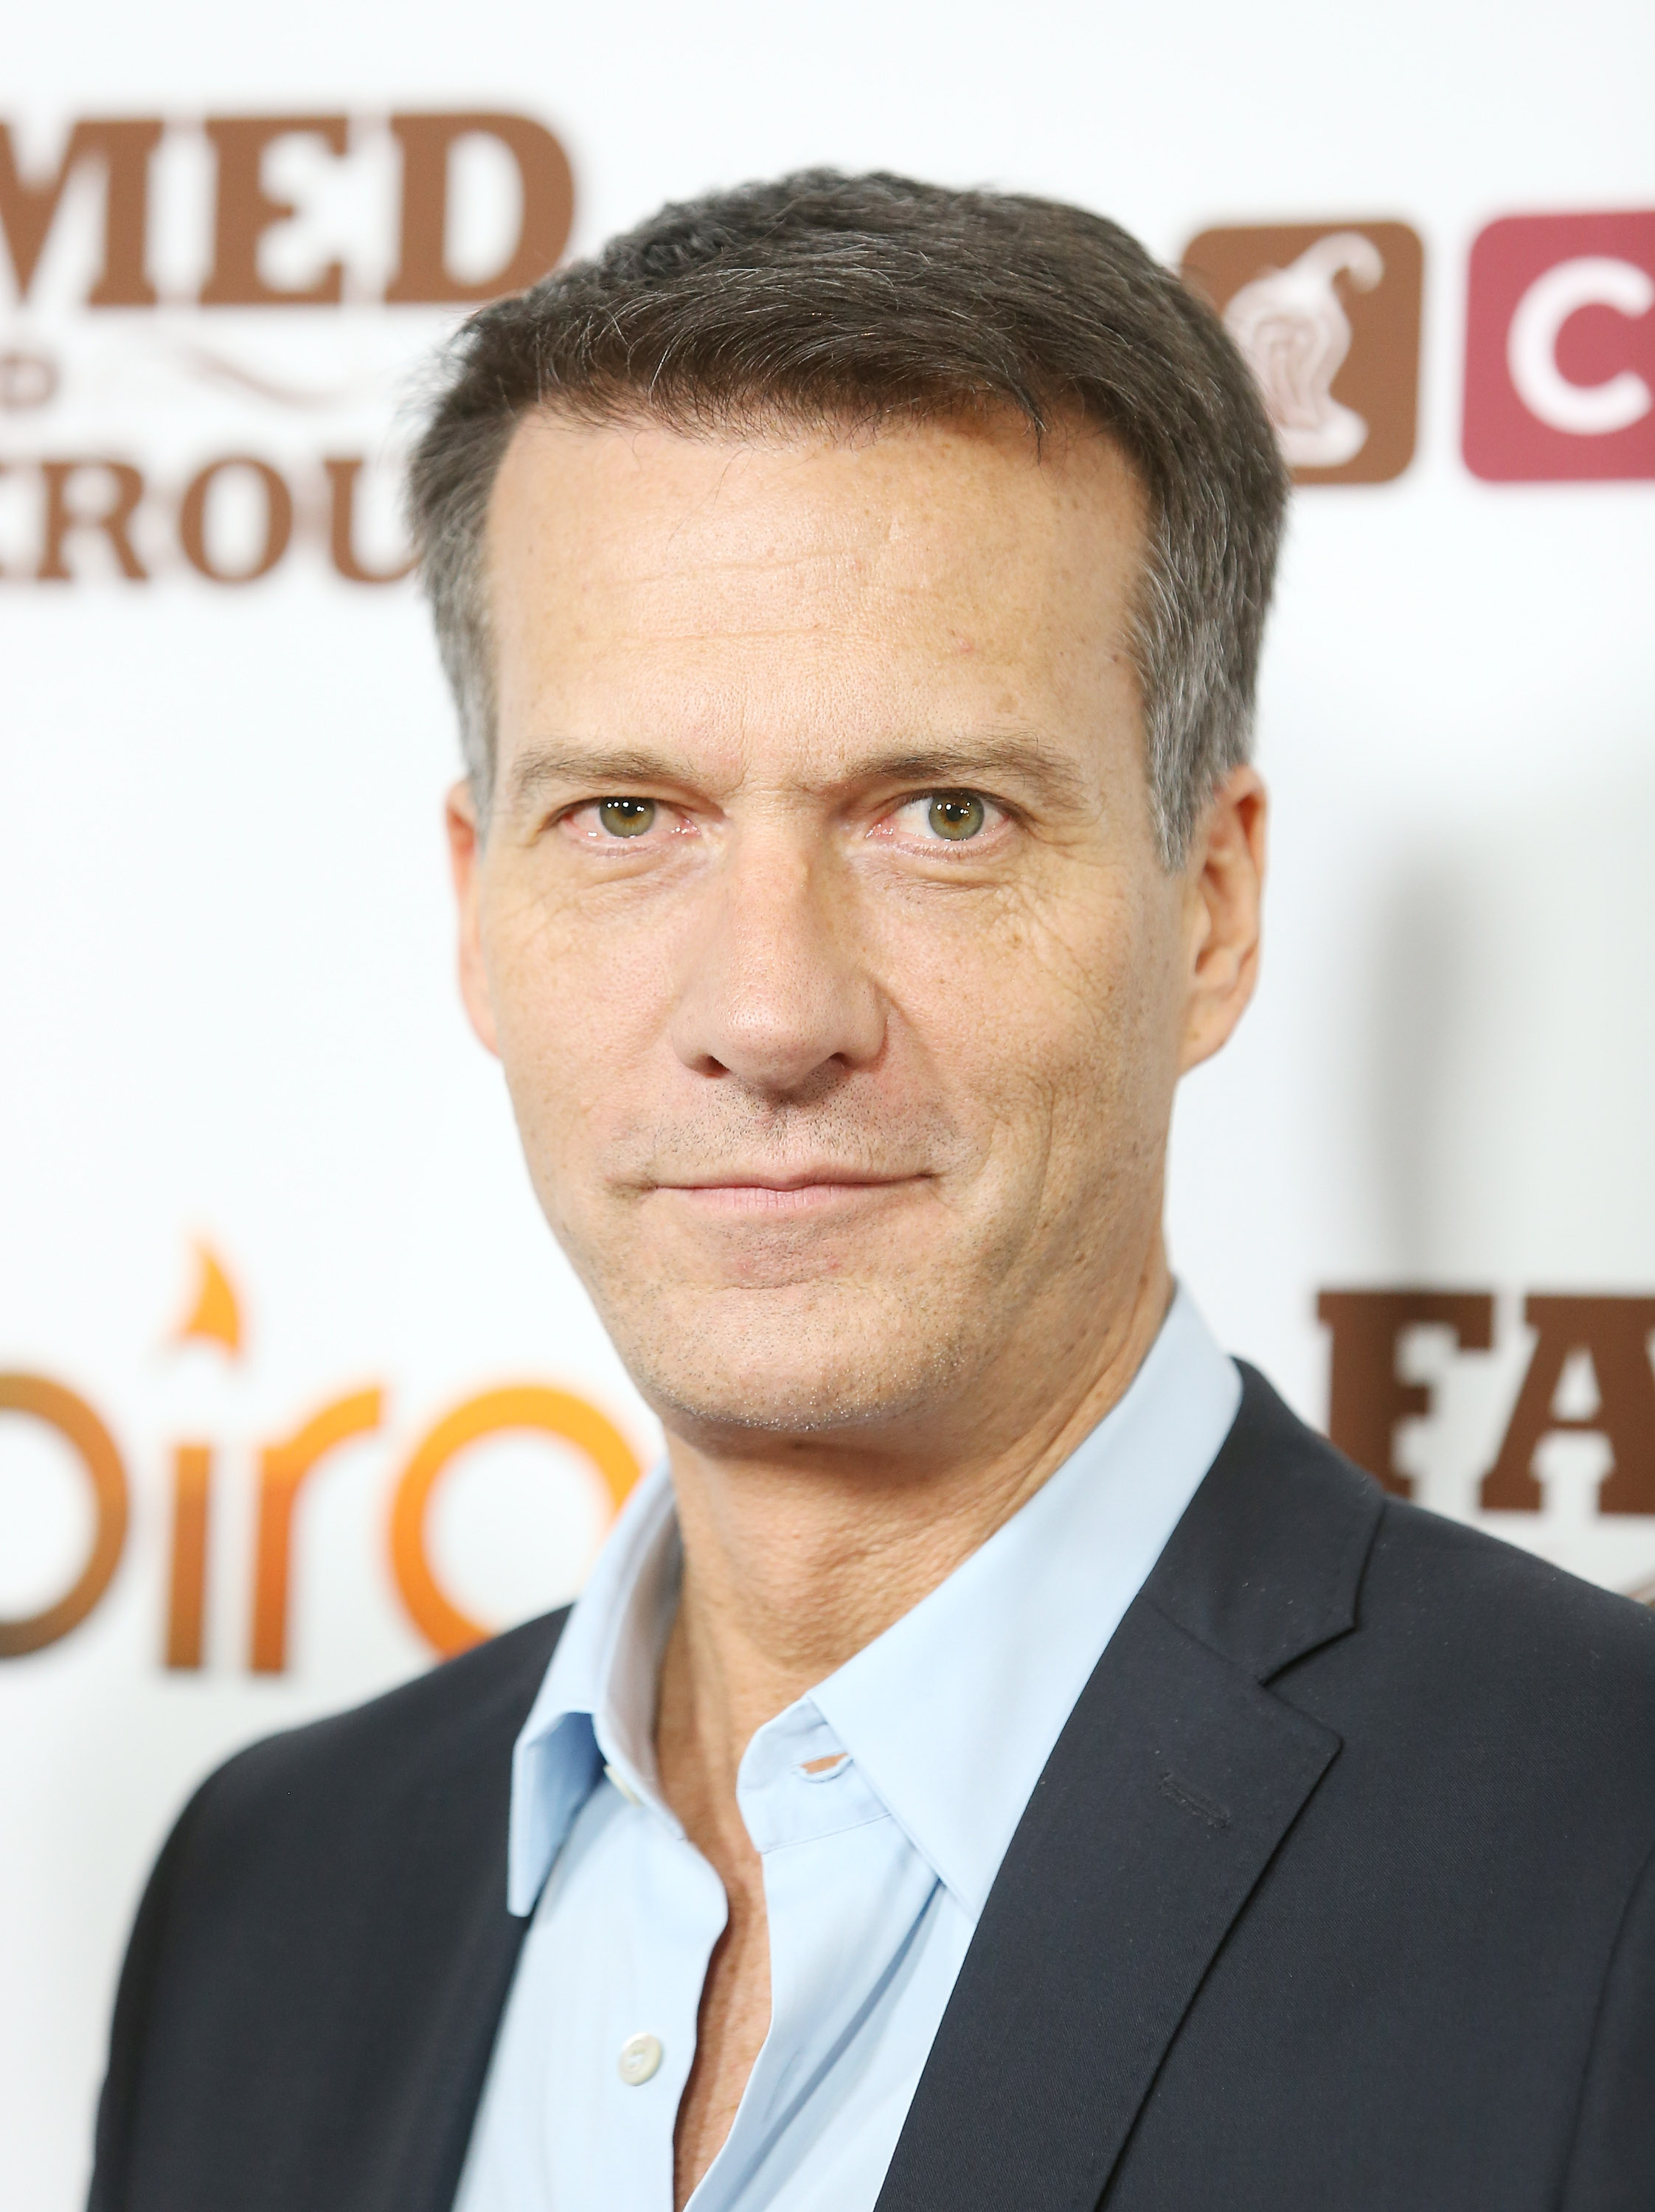 Mark Crumpacker arrives at the Chipotle world premiere of original comedy web series  Farmed And Dangerous  held at DGA Theater on February 11, 2014 in Los Angeles, California.